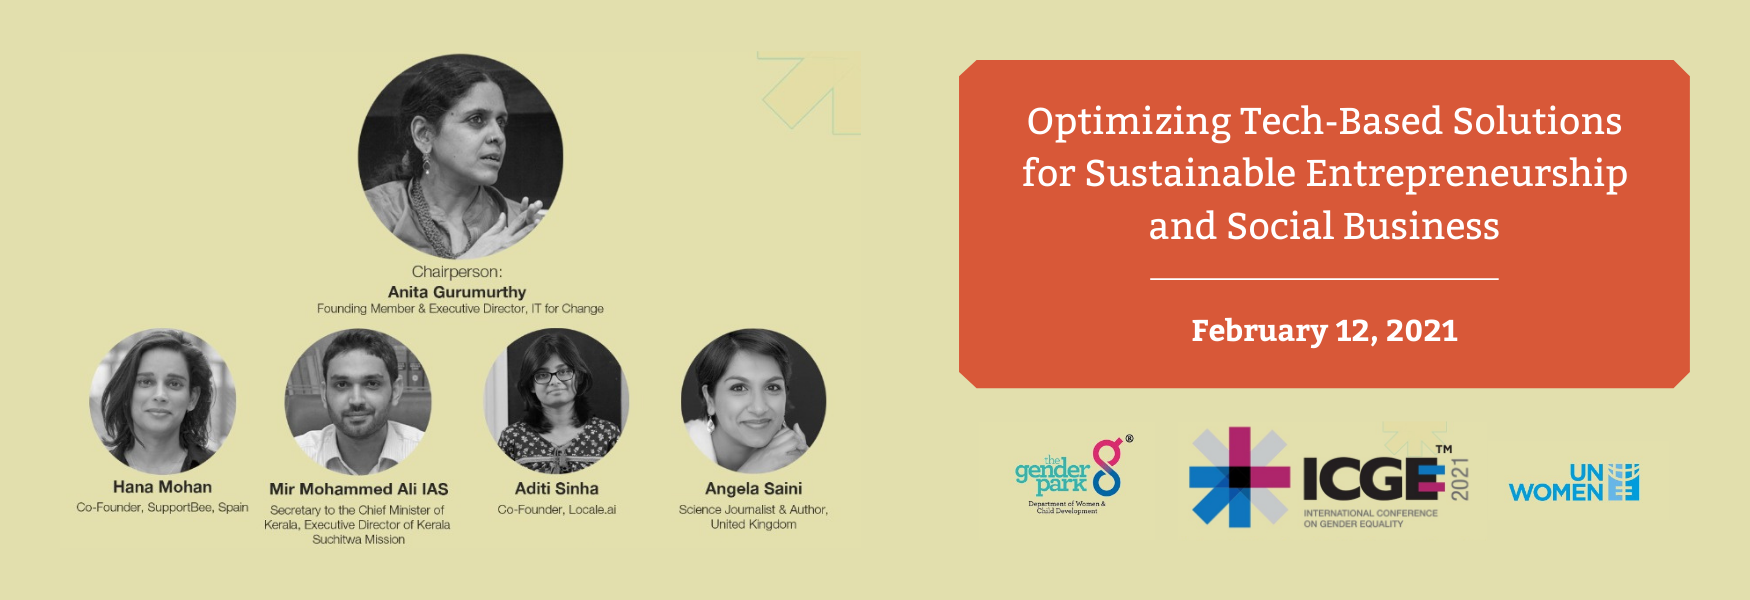 Optimizing Tech-Based Solutions for Sustainable Entrepreneurship and Social Business